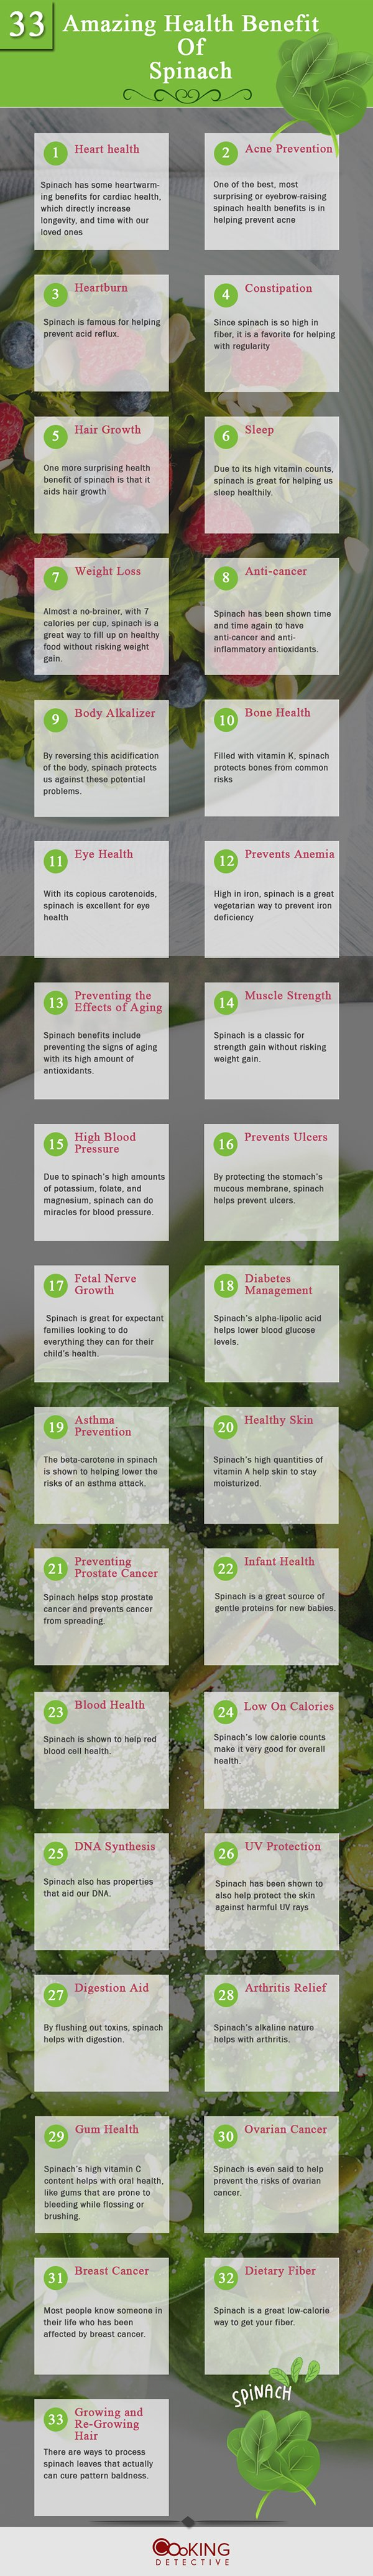 spinach health benefits infographic